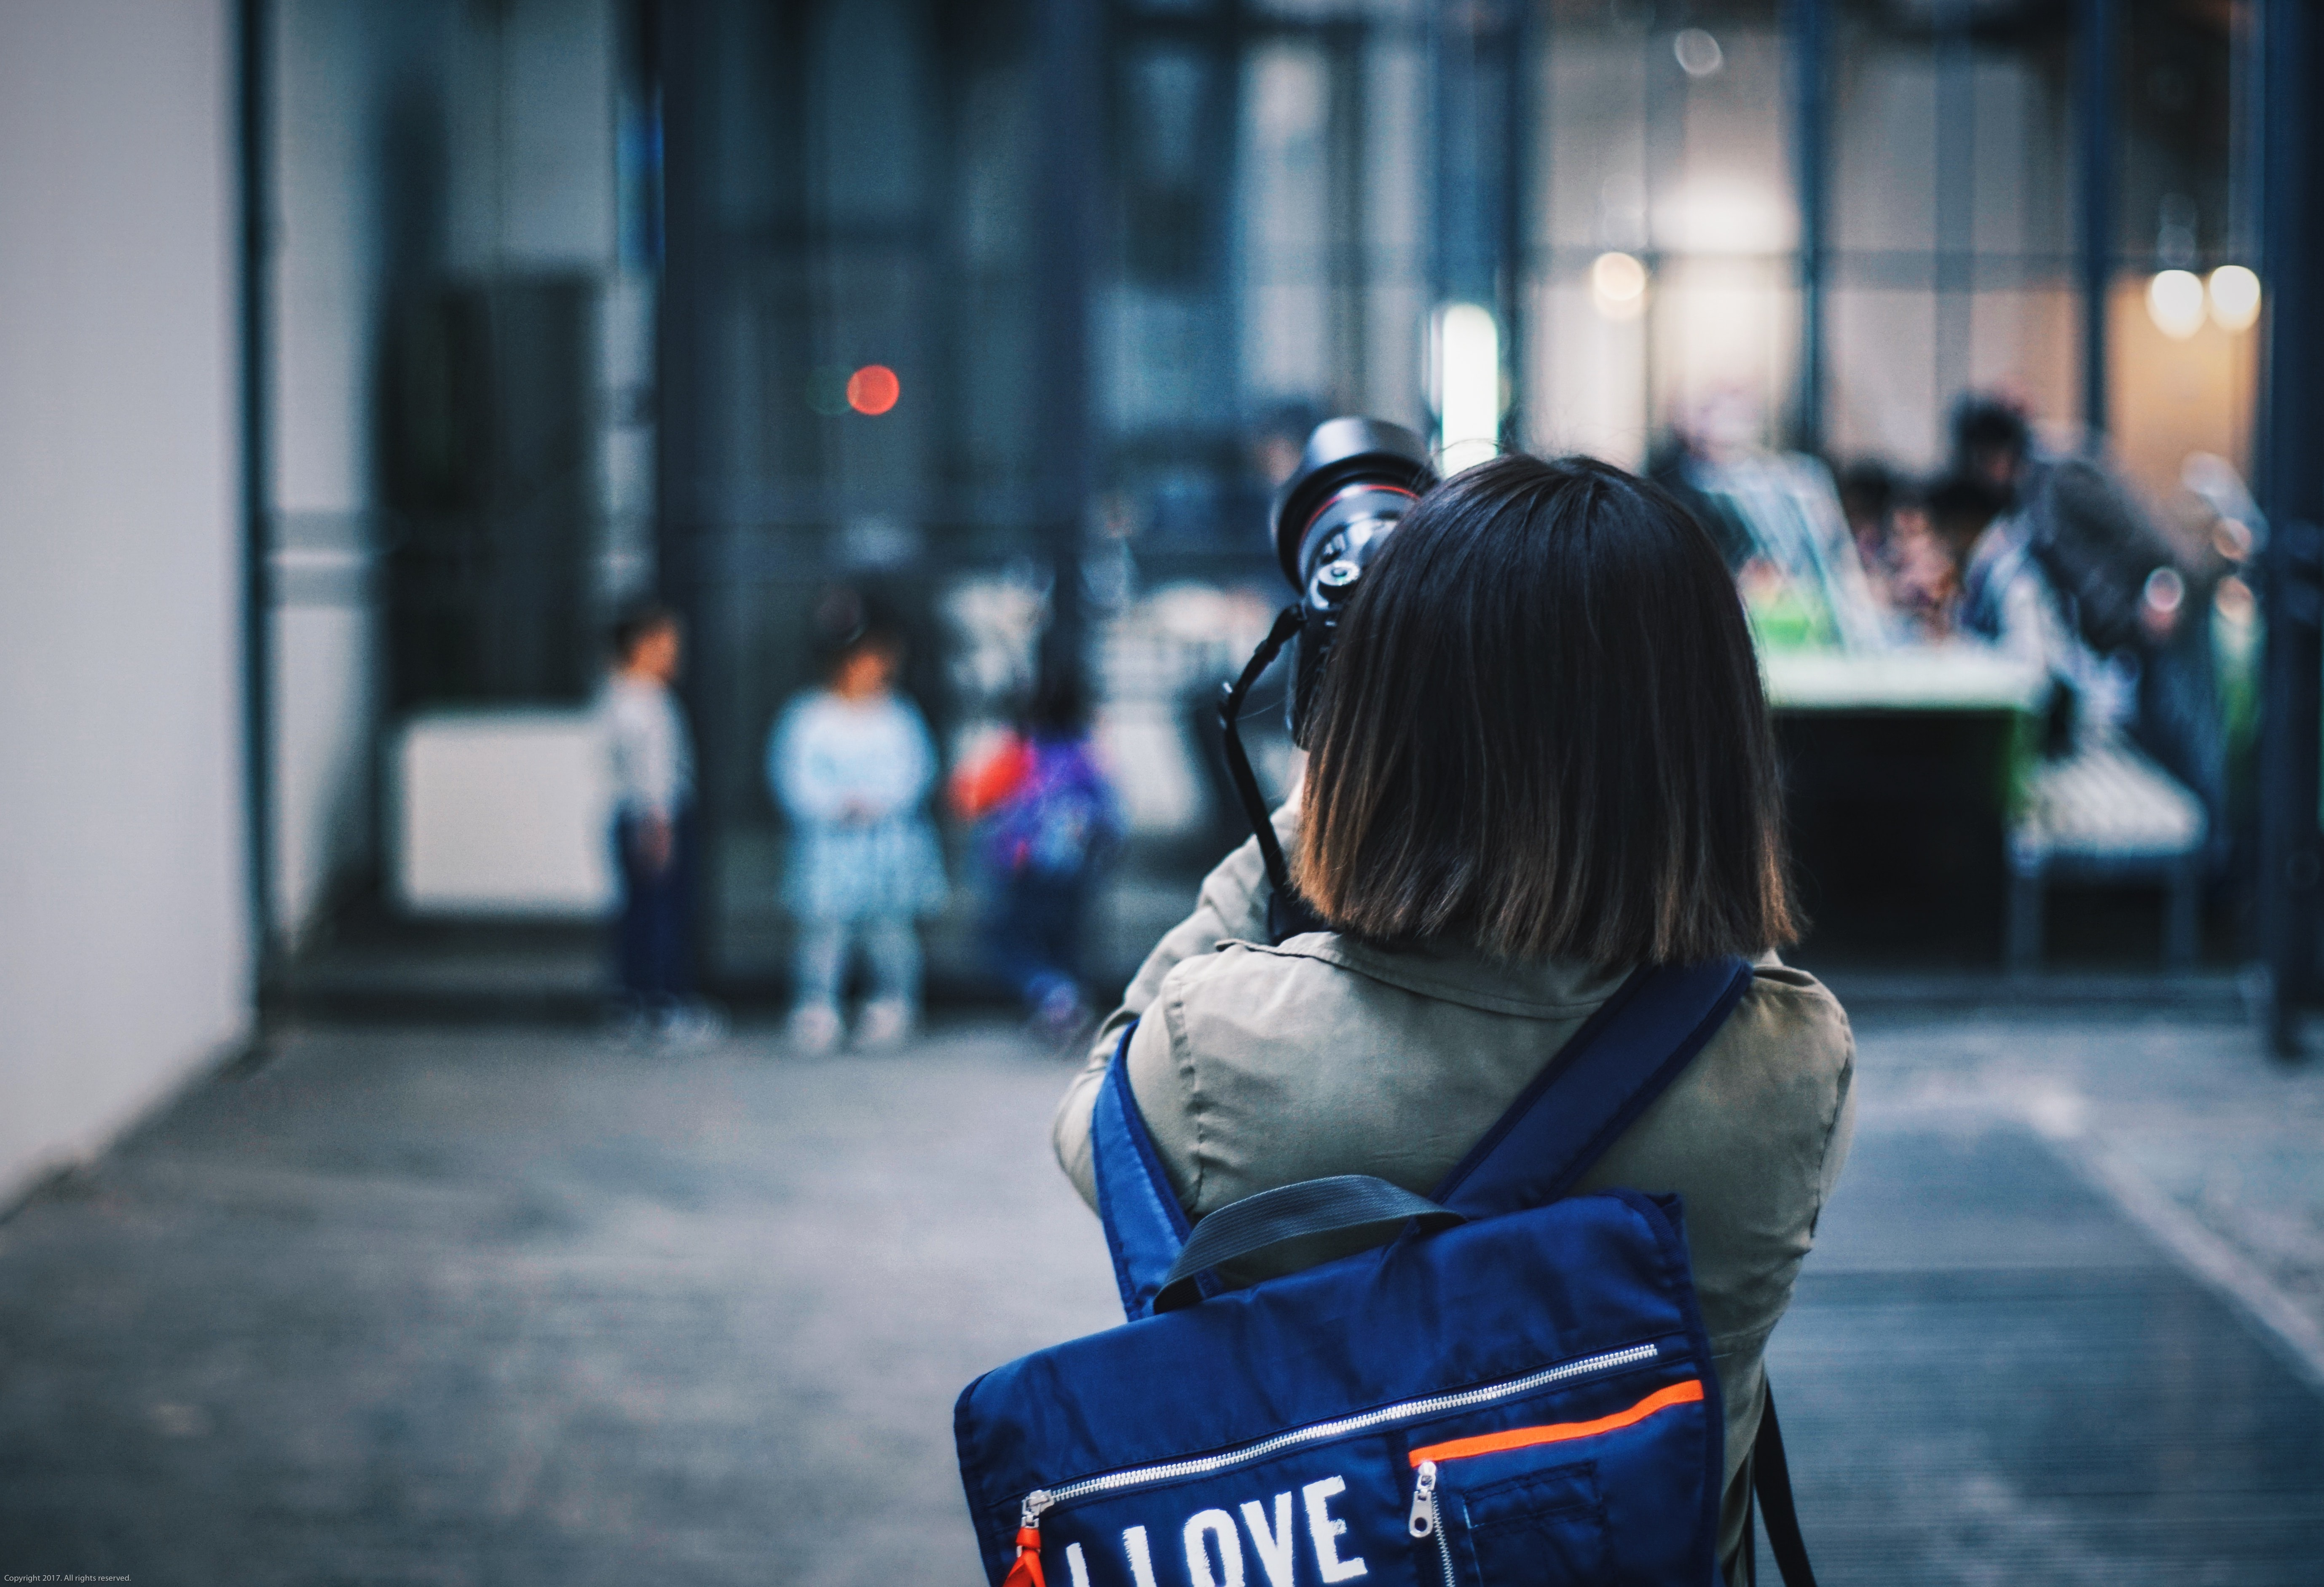 Young girl taking photograph with I love bag with people in background, Beijing 798 Art District